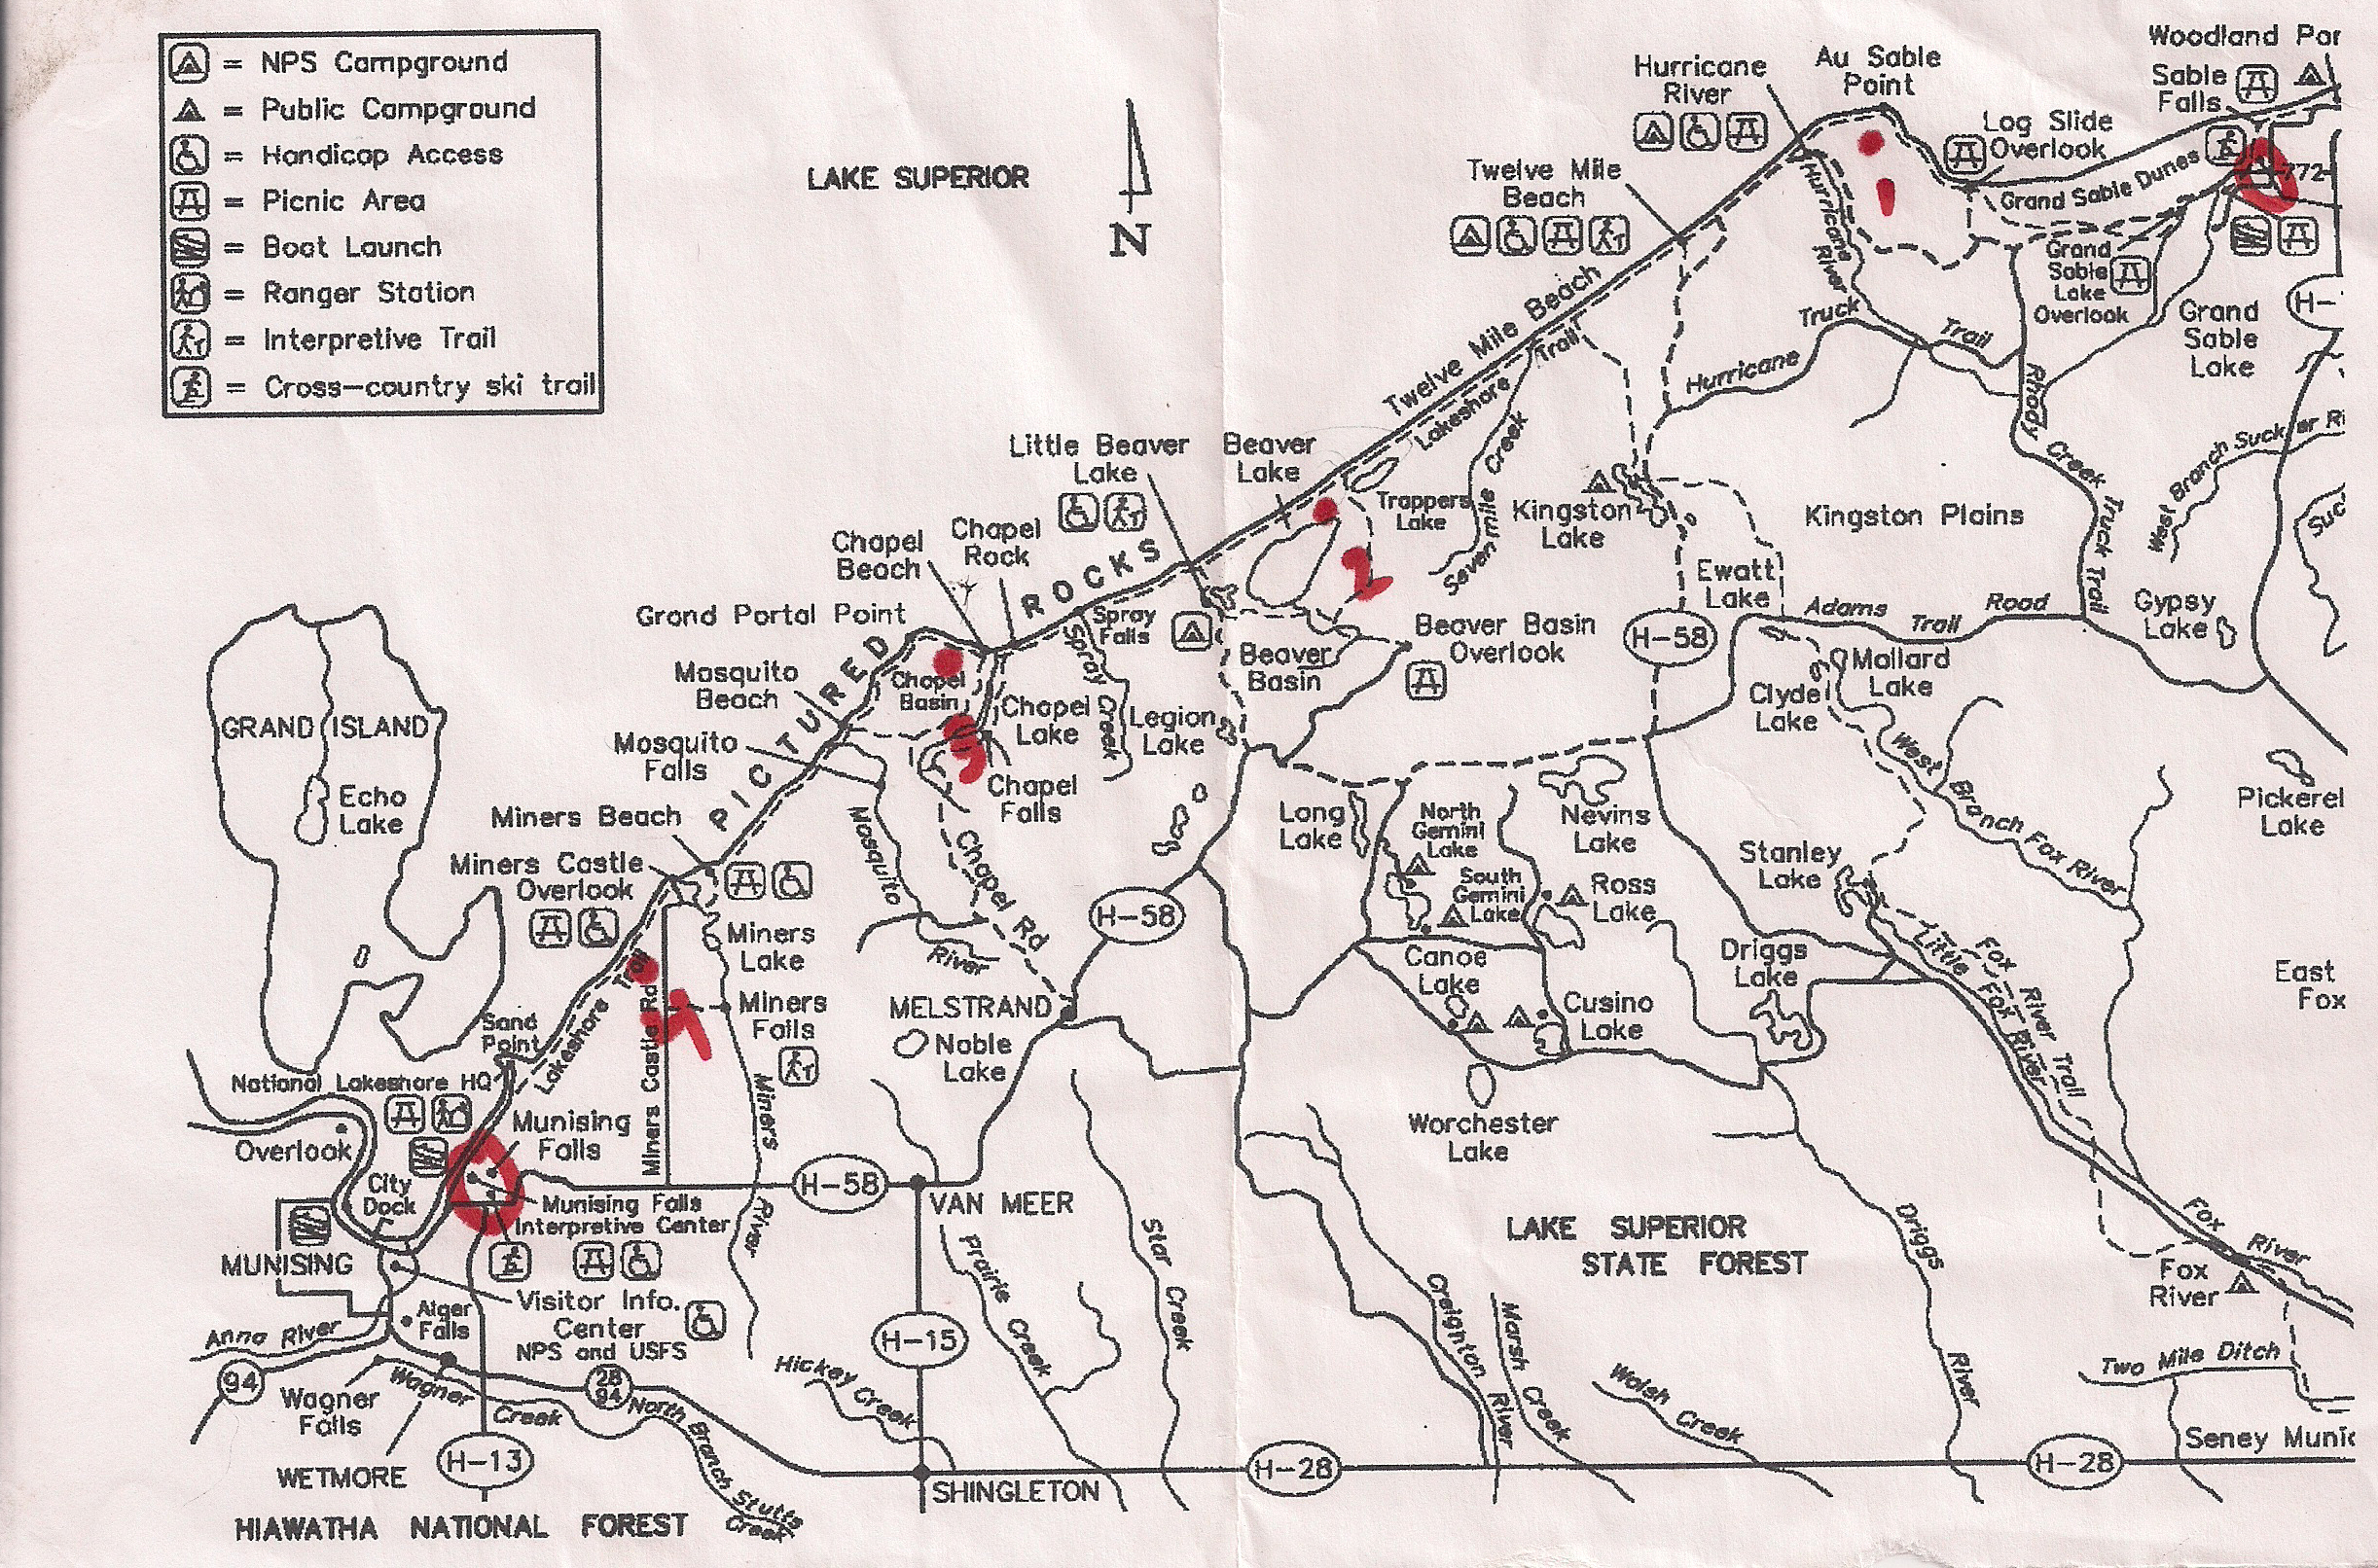 Pictured Rocks Michigan Map.Pictured Rocks Trail Map 1 Seeking Lost Hiking Backpacking